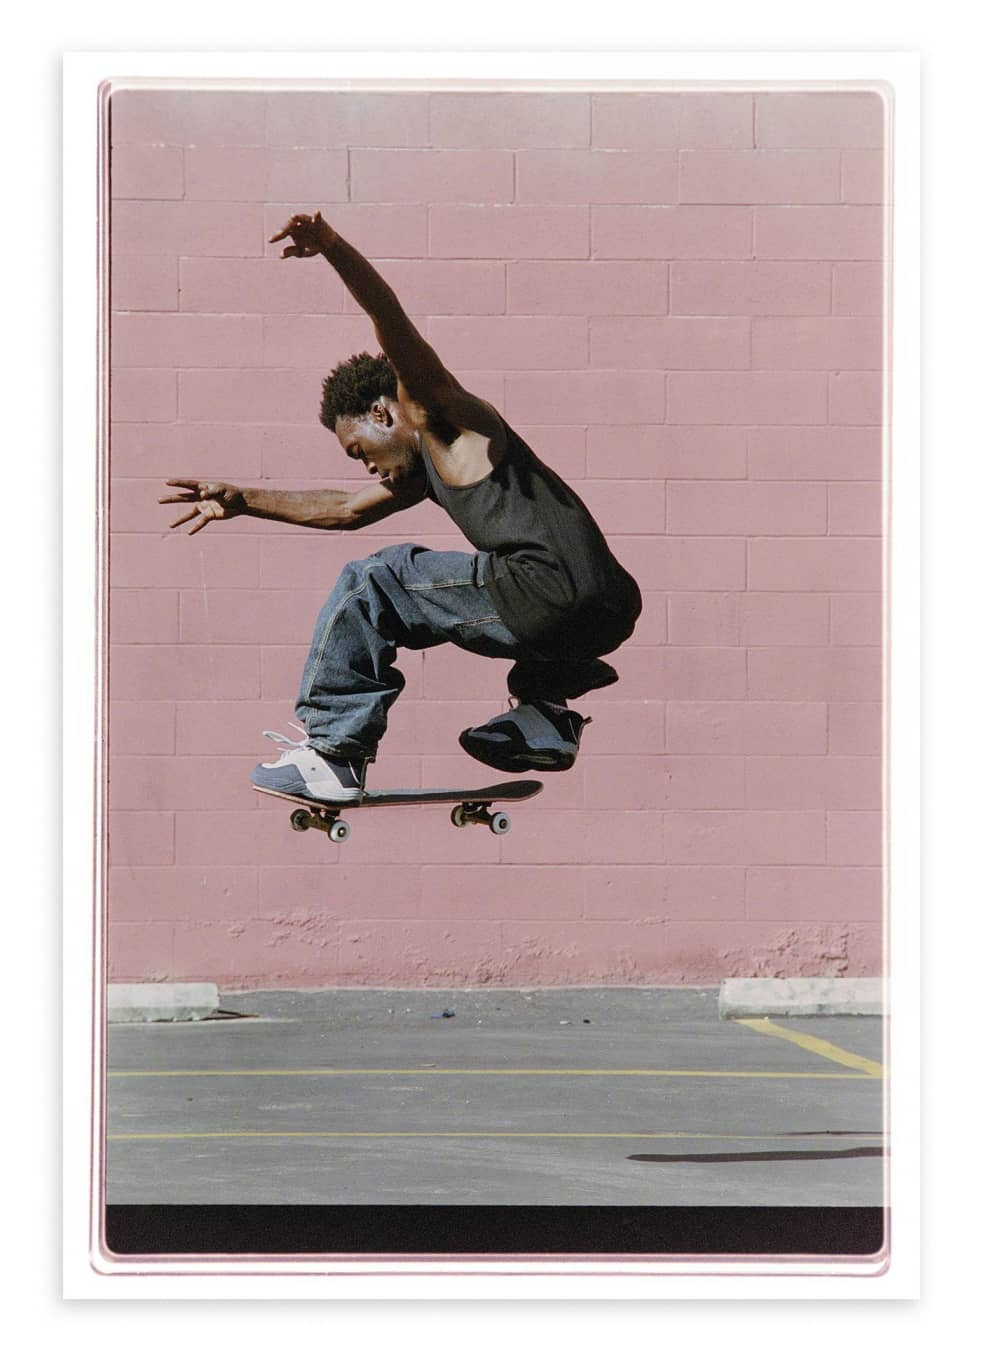 Stevie Williams, Los Angeles, 2000   Photograph by Mike Blabac 1